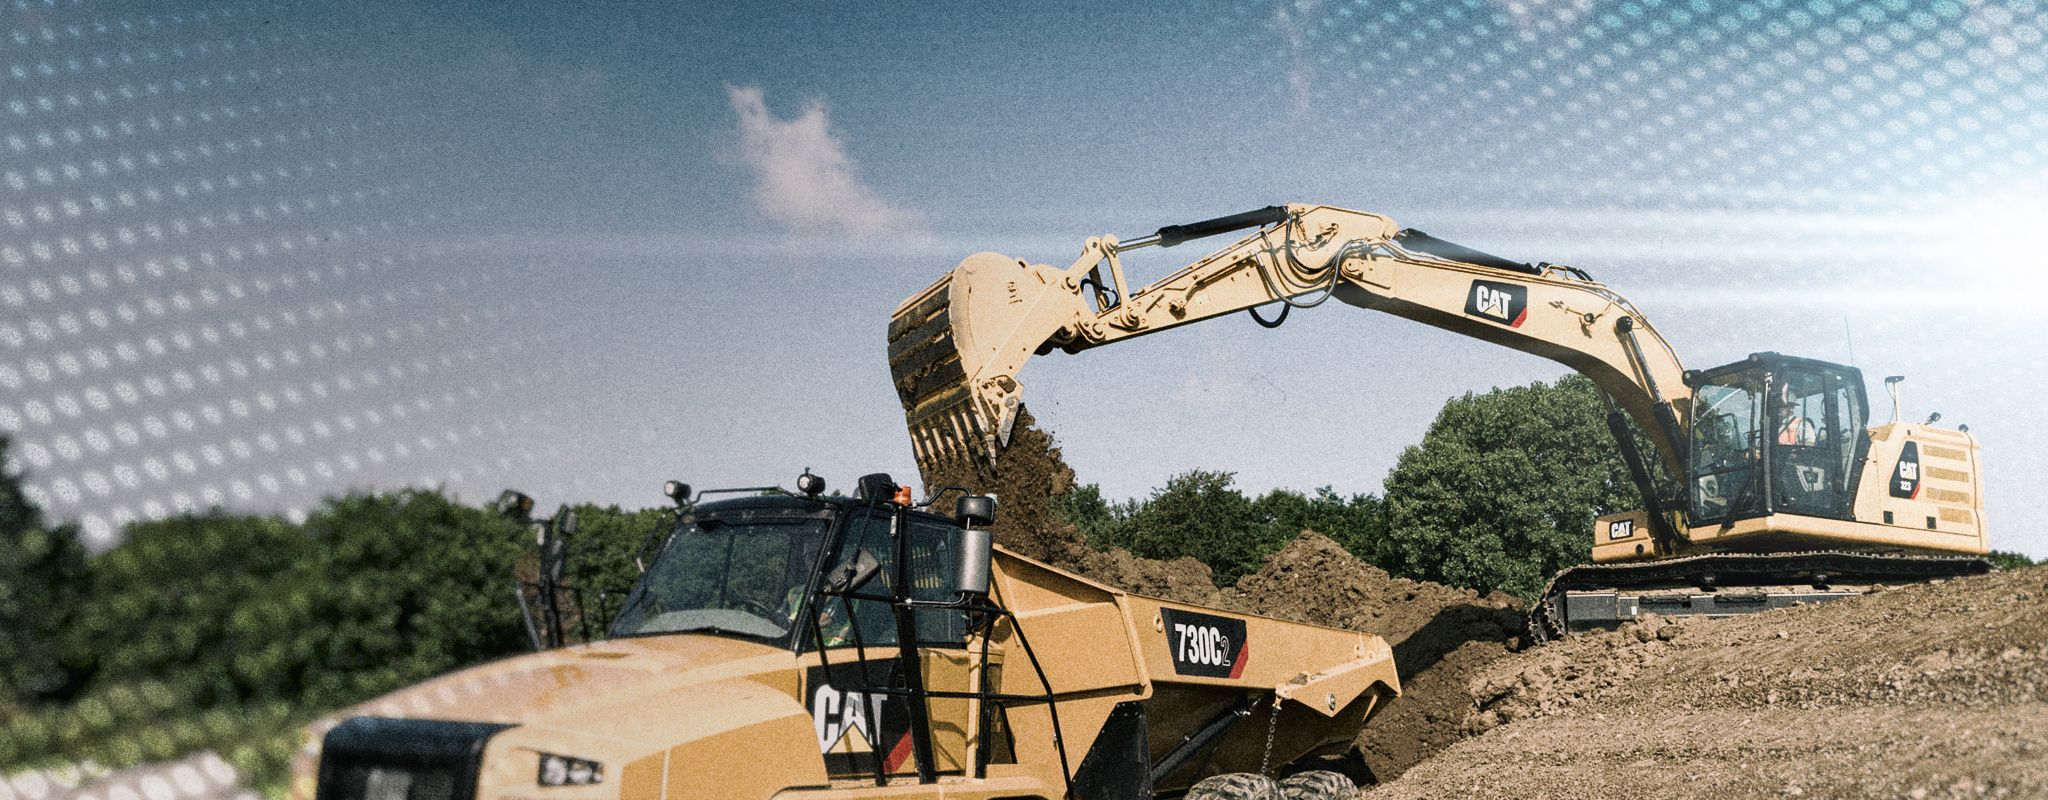 Caterpillar Construction Webinar Series - Best practices, lower costs, increased productivity